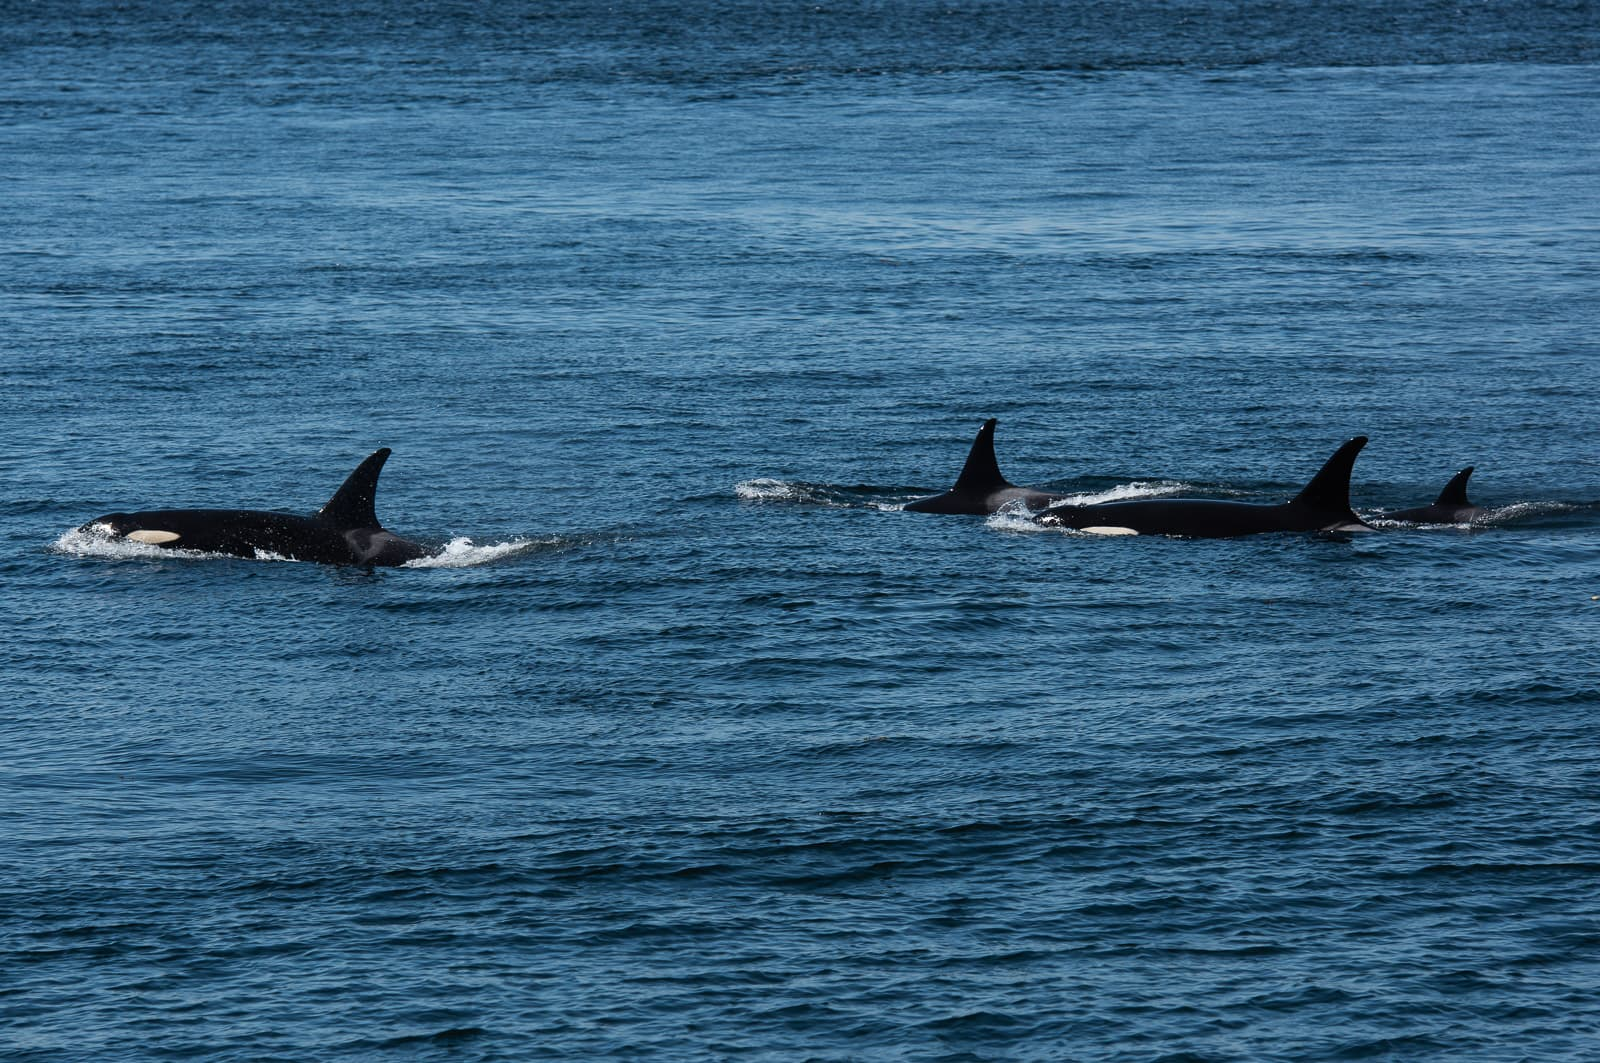 San Juan Island: Whales to the North